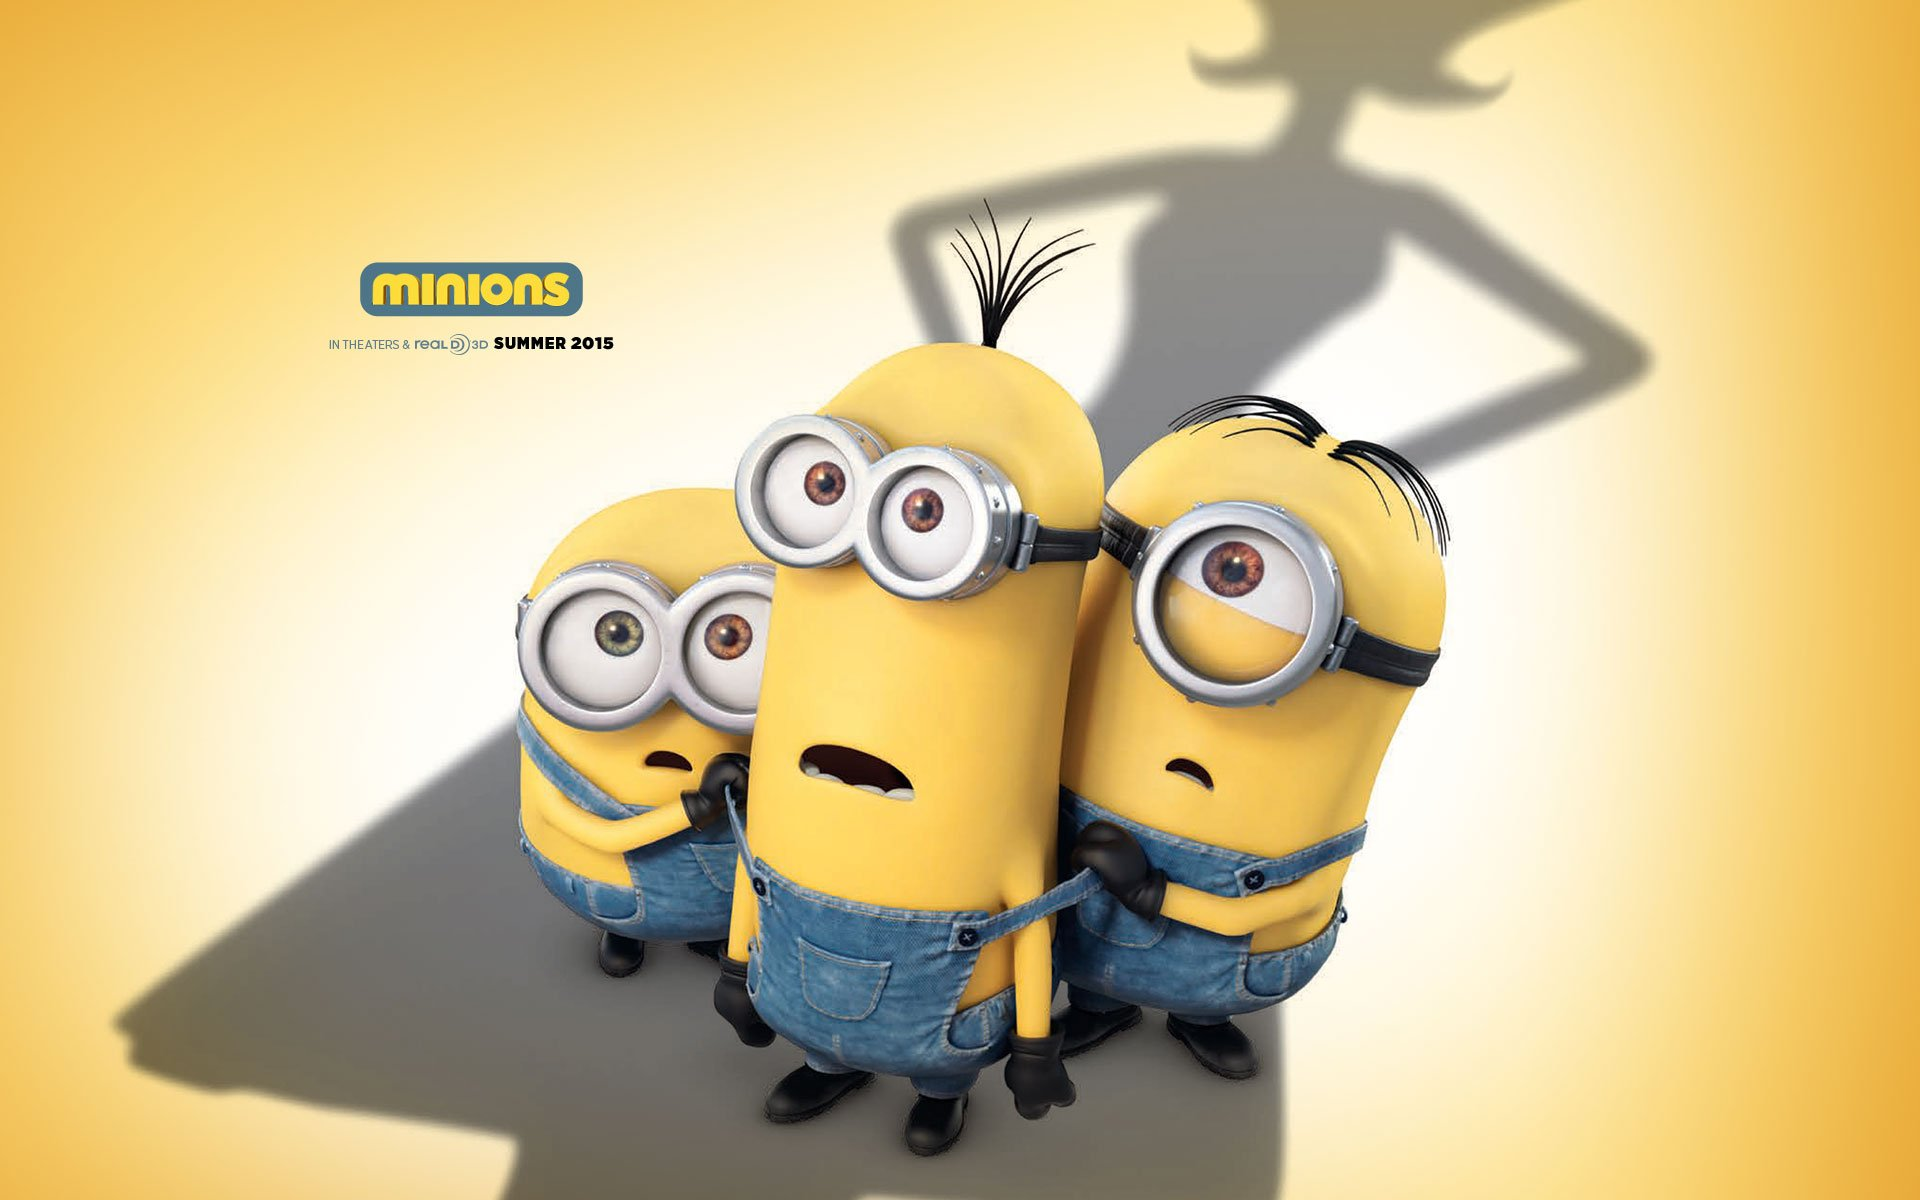 48 ] Free Minions Wallpapers For Desktop On WallpaperSafari